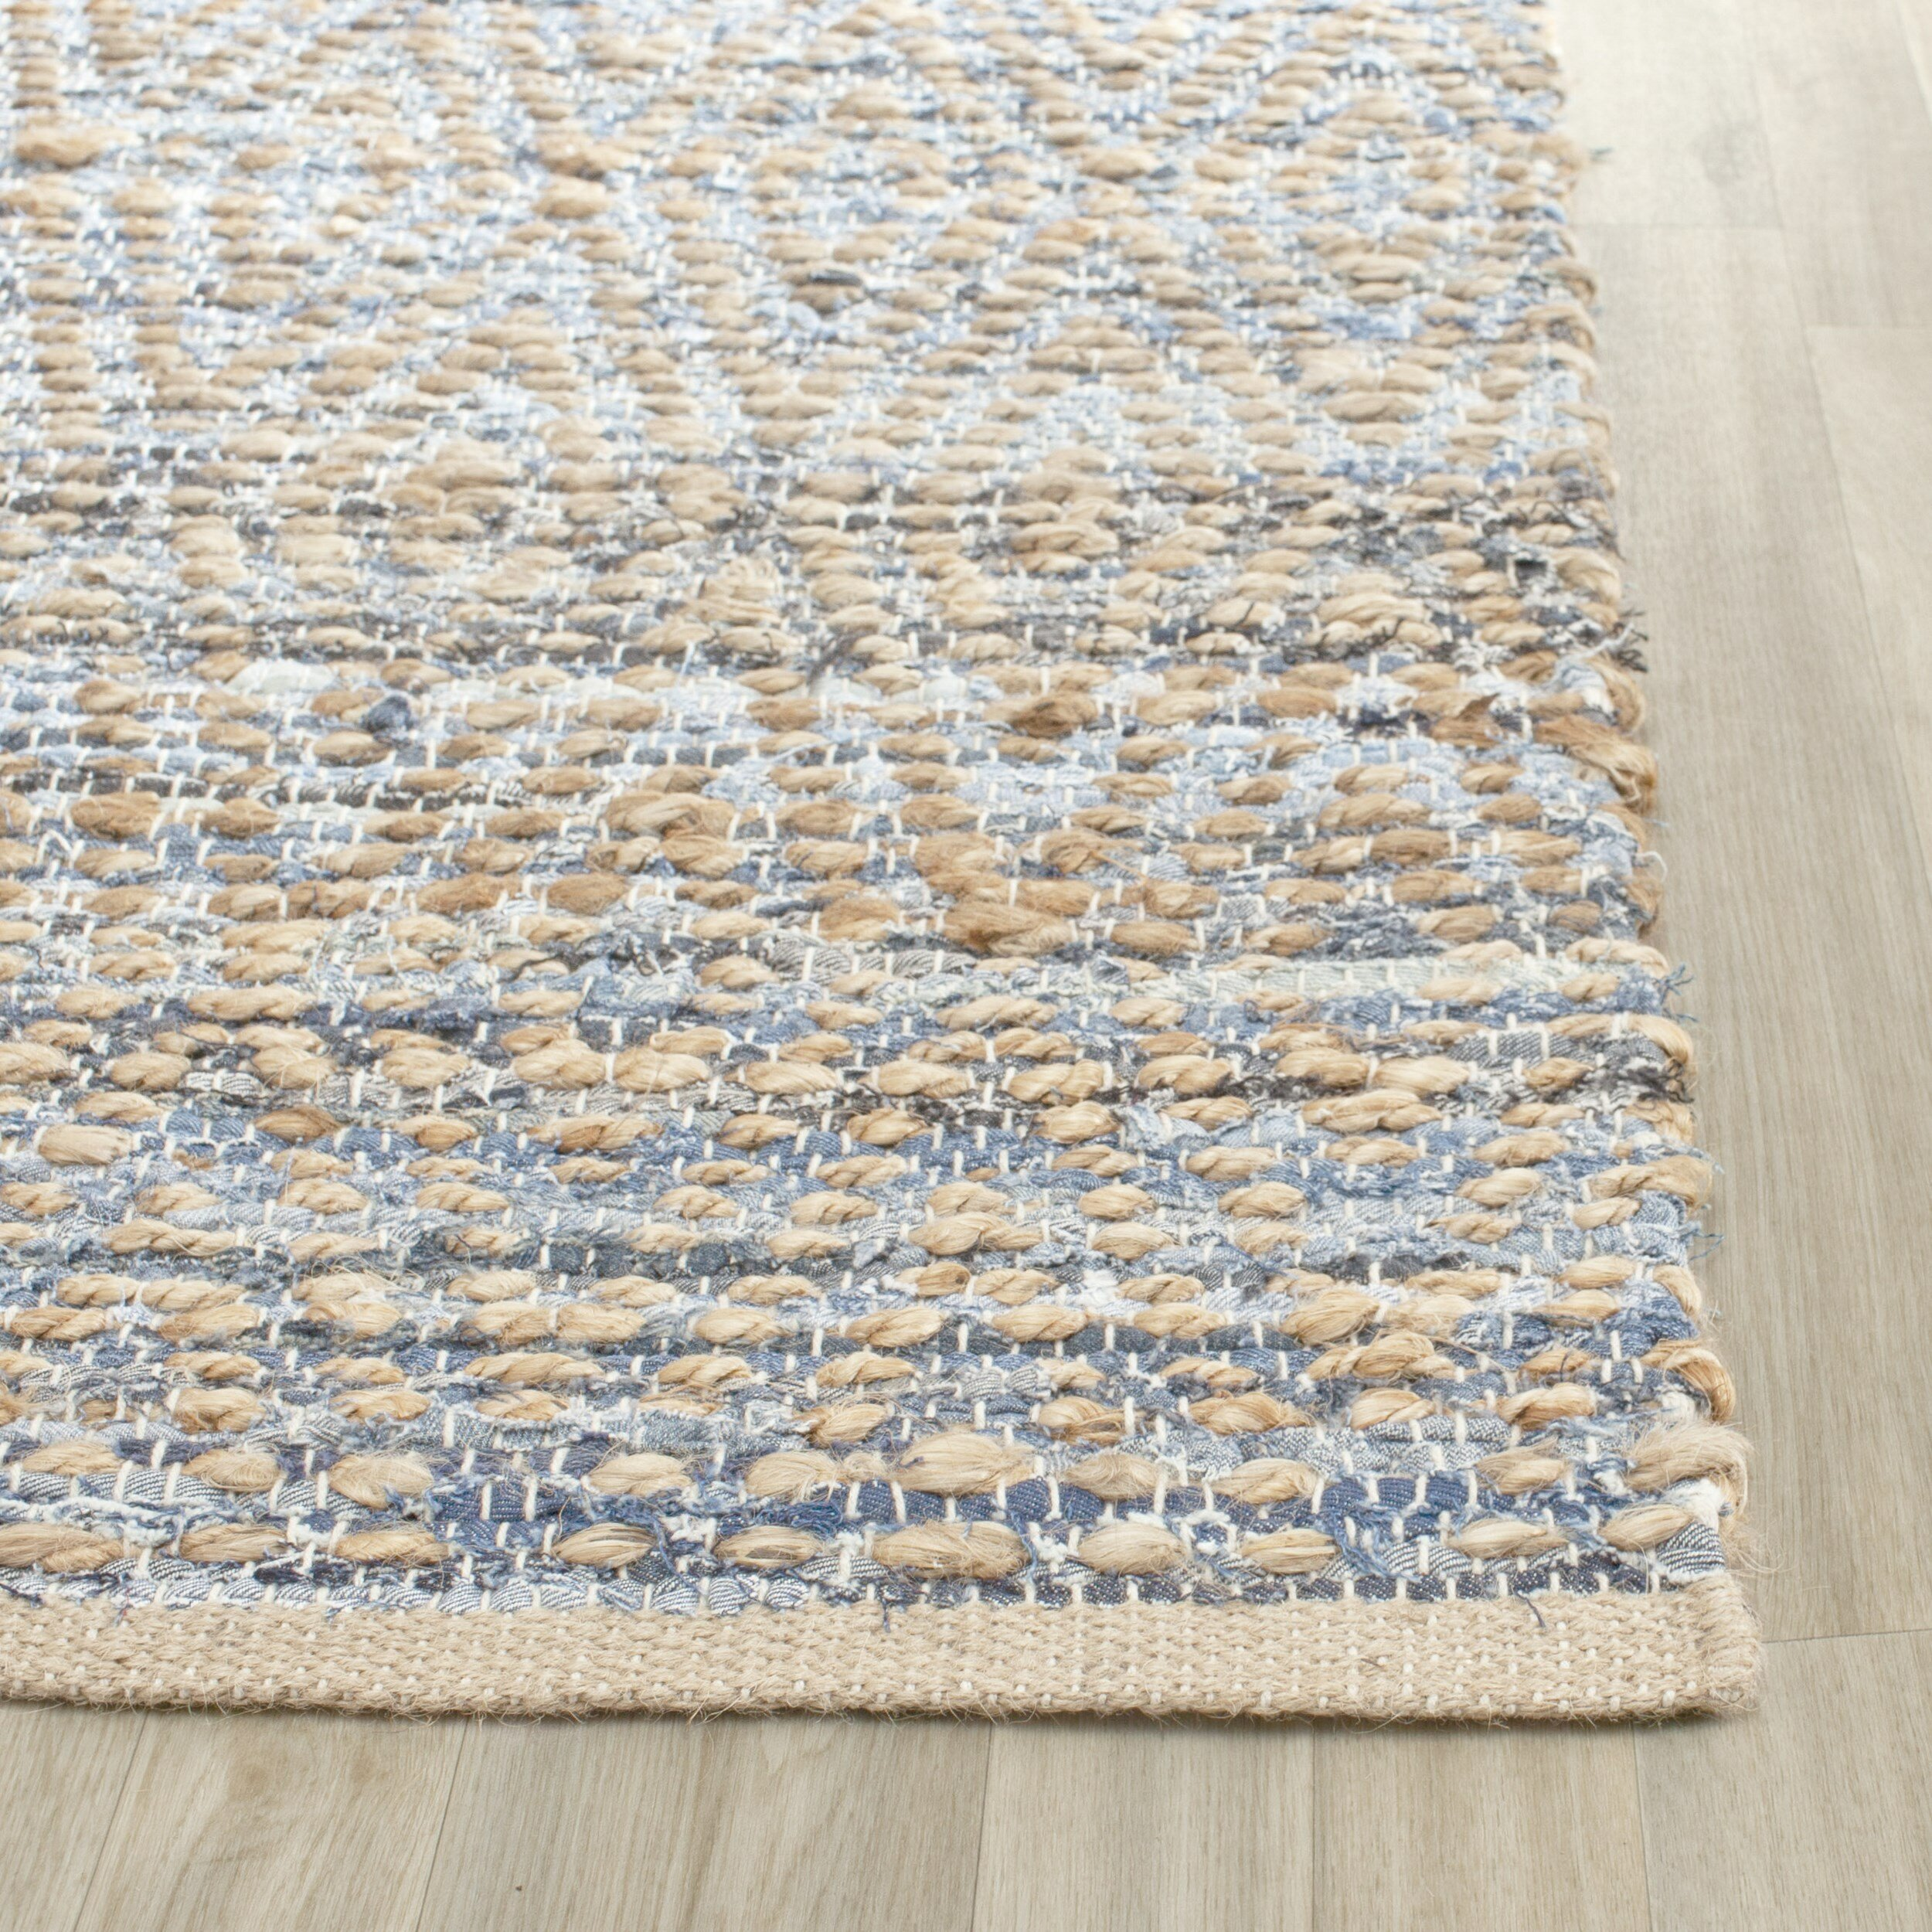 Woven Kitchen Rugs: Beachcrest Home Palm Coast Hand-Woven Natural/Blue Area